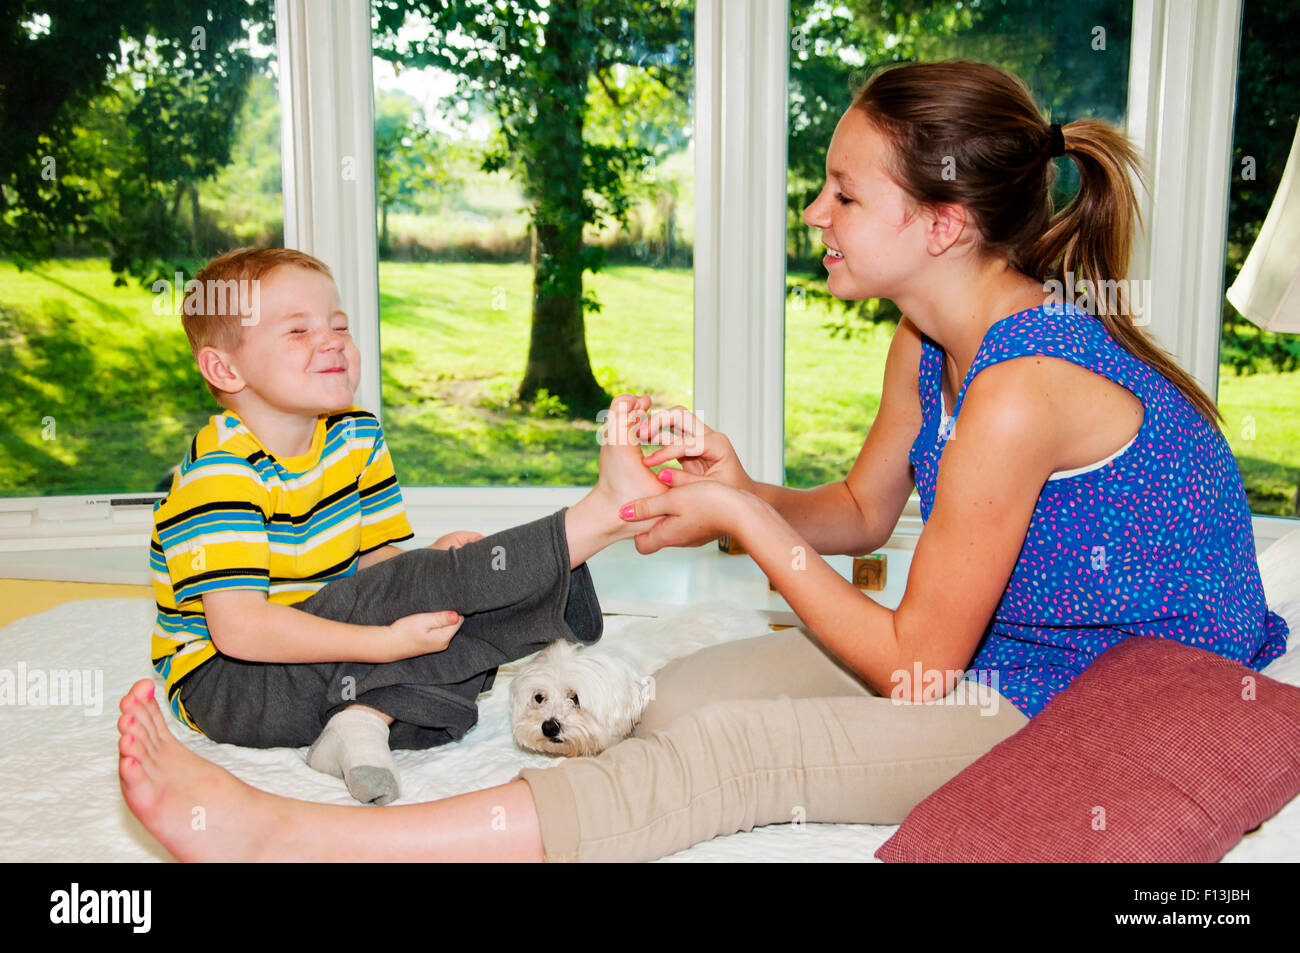 Samus Feet Tickle: Boy Trying Not To Laugh While Foot Is Tickled Stock Photo